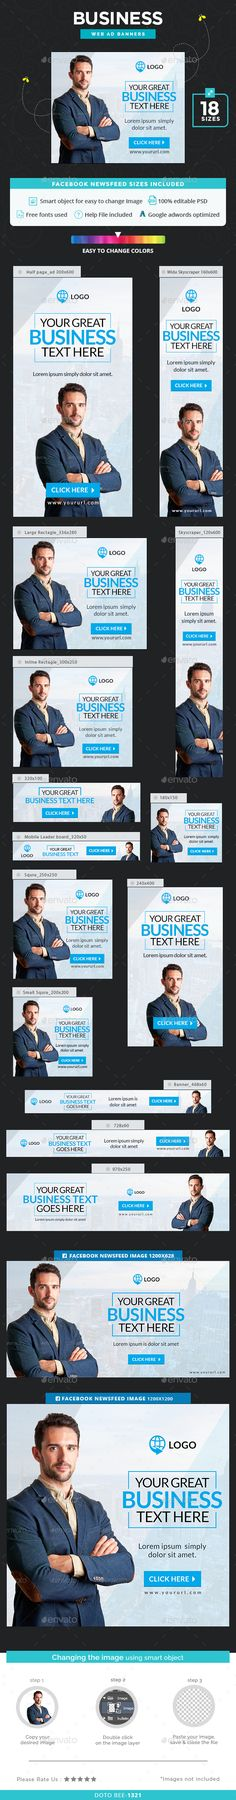 Business Web Banners Template PSD. Download here: http://graphicriver.net/item/business-banners/15865992?ref=ksioks